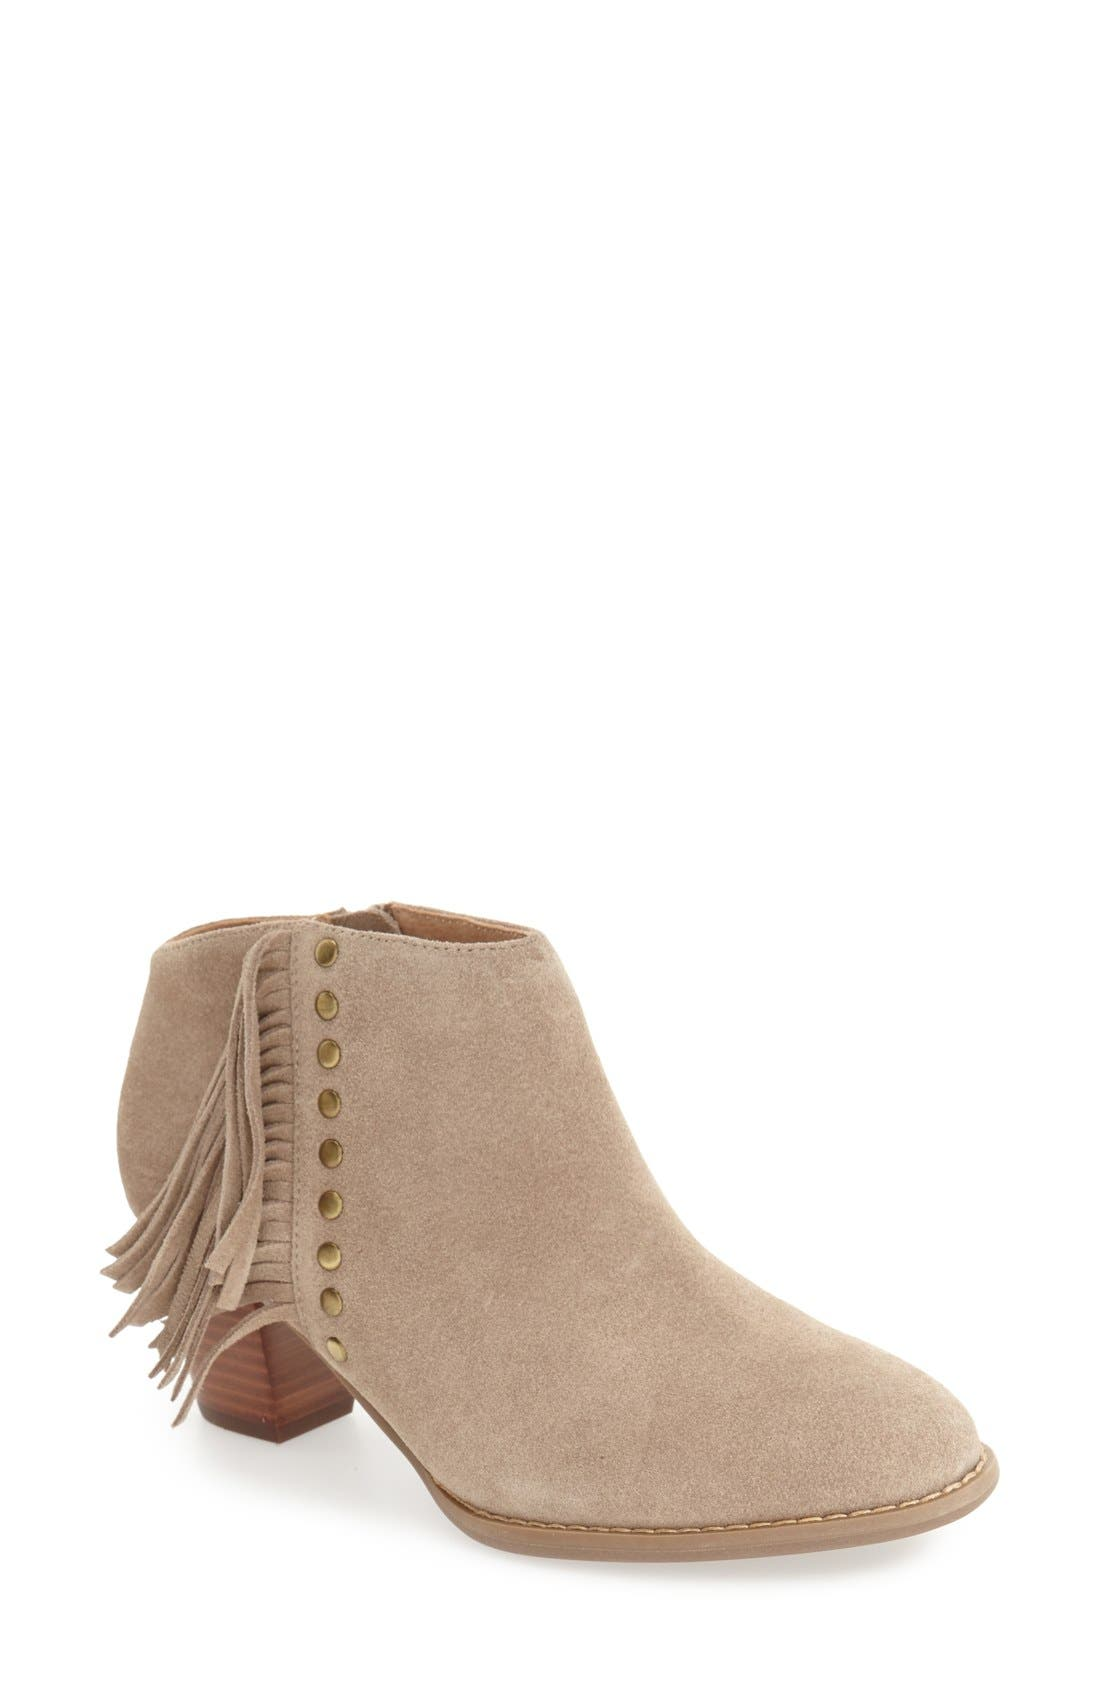 Alternate Image 1 Selected - Vionic 'Faros' Suede Bootie (Women)